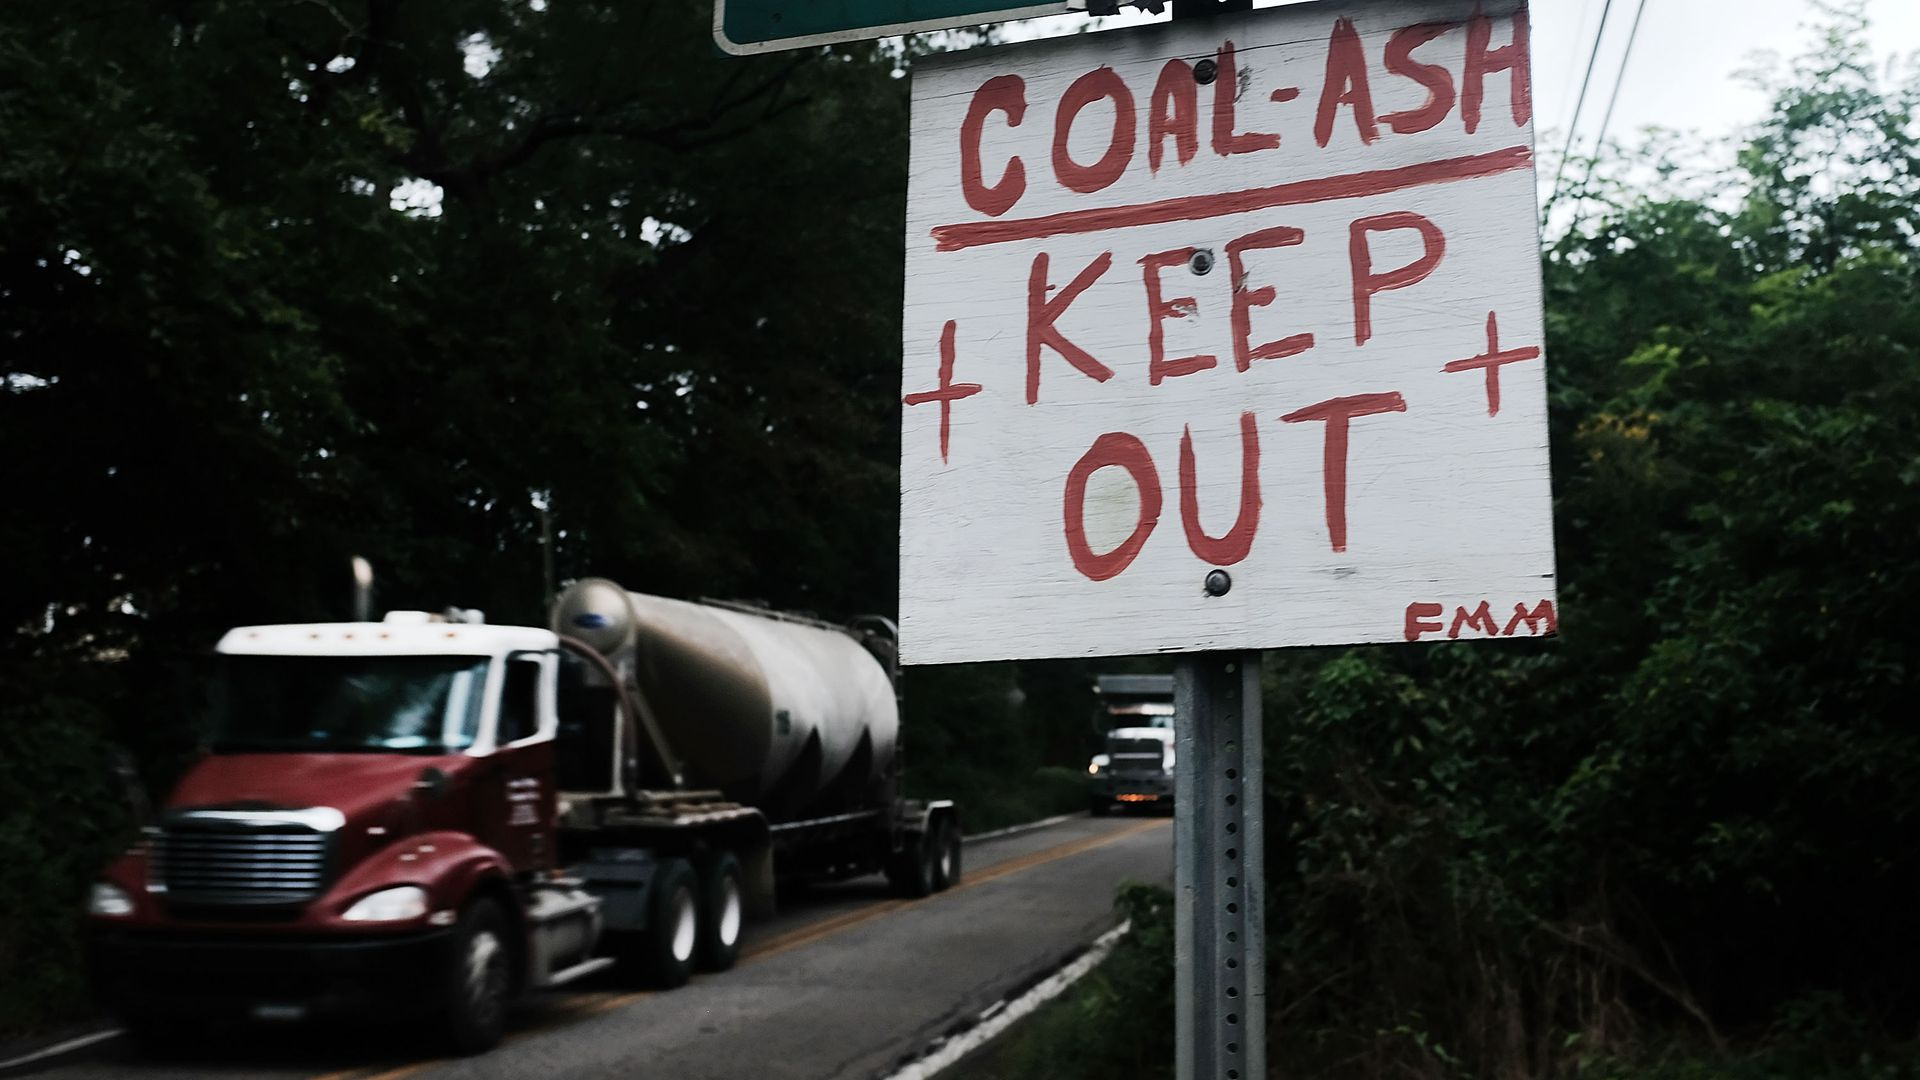 sign that says coal ash keep out